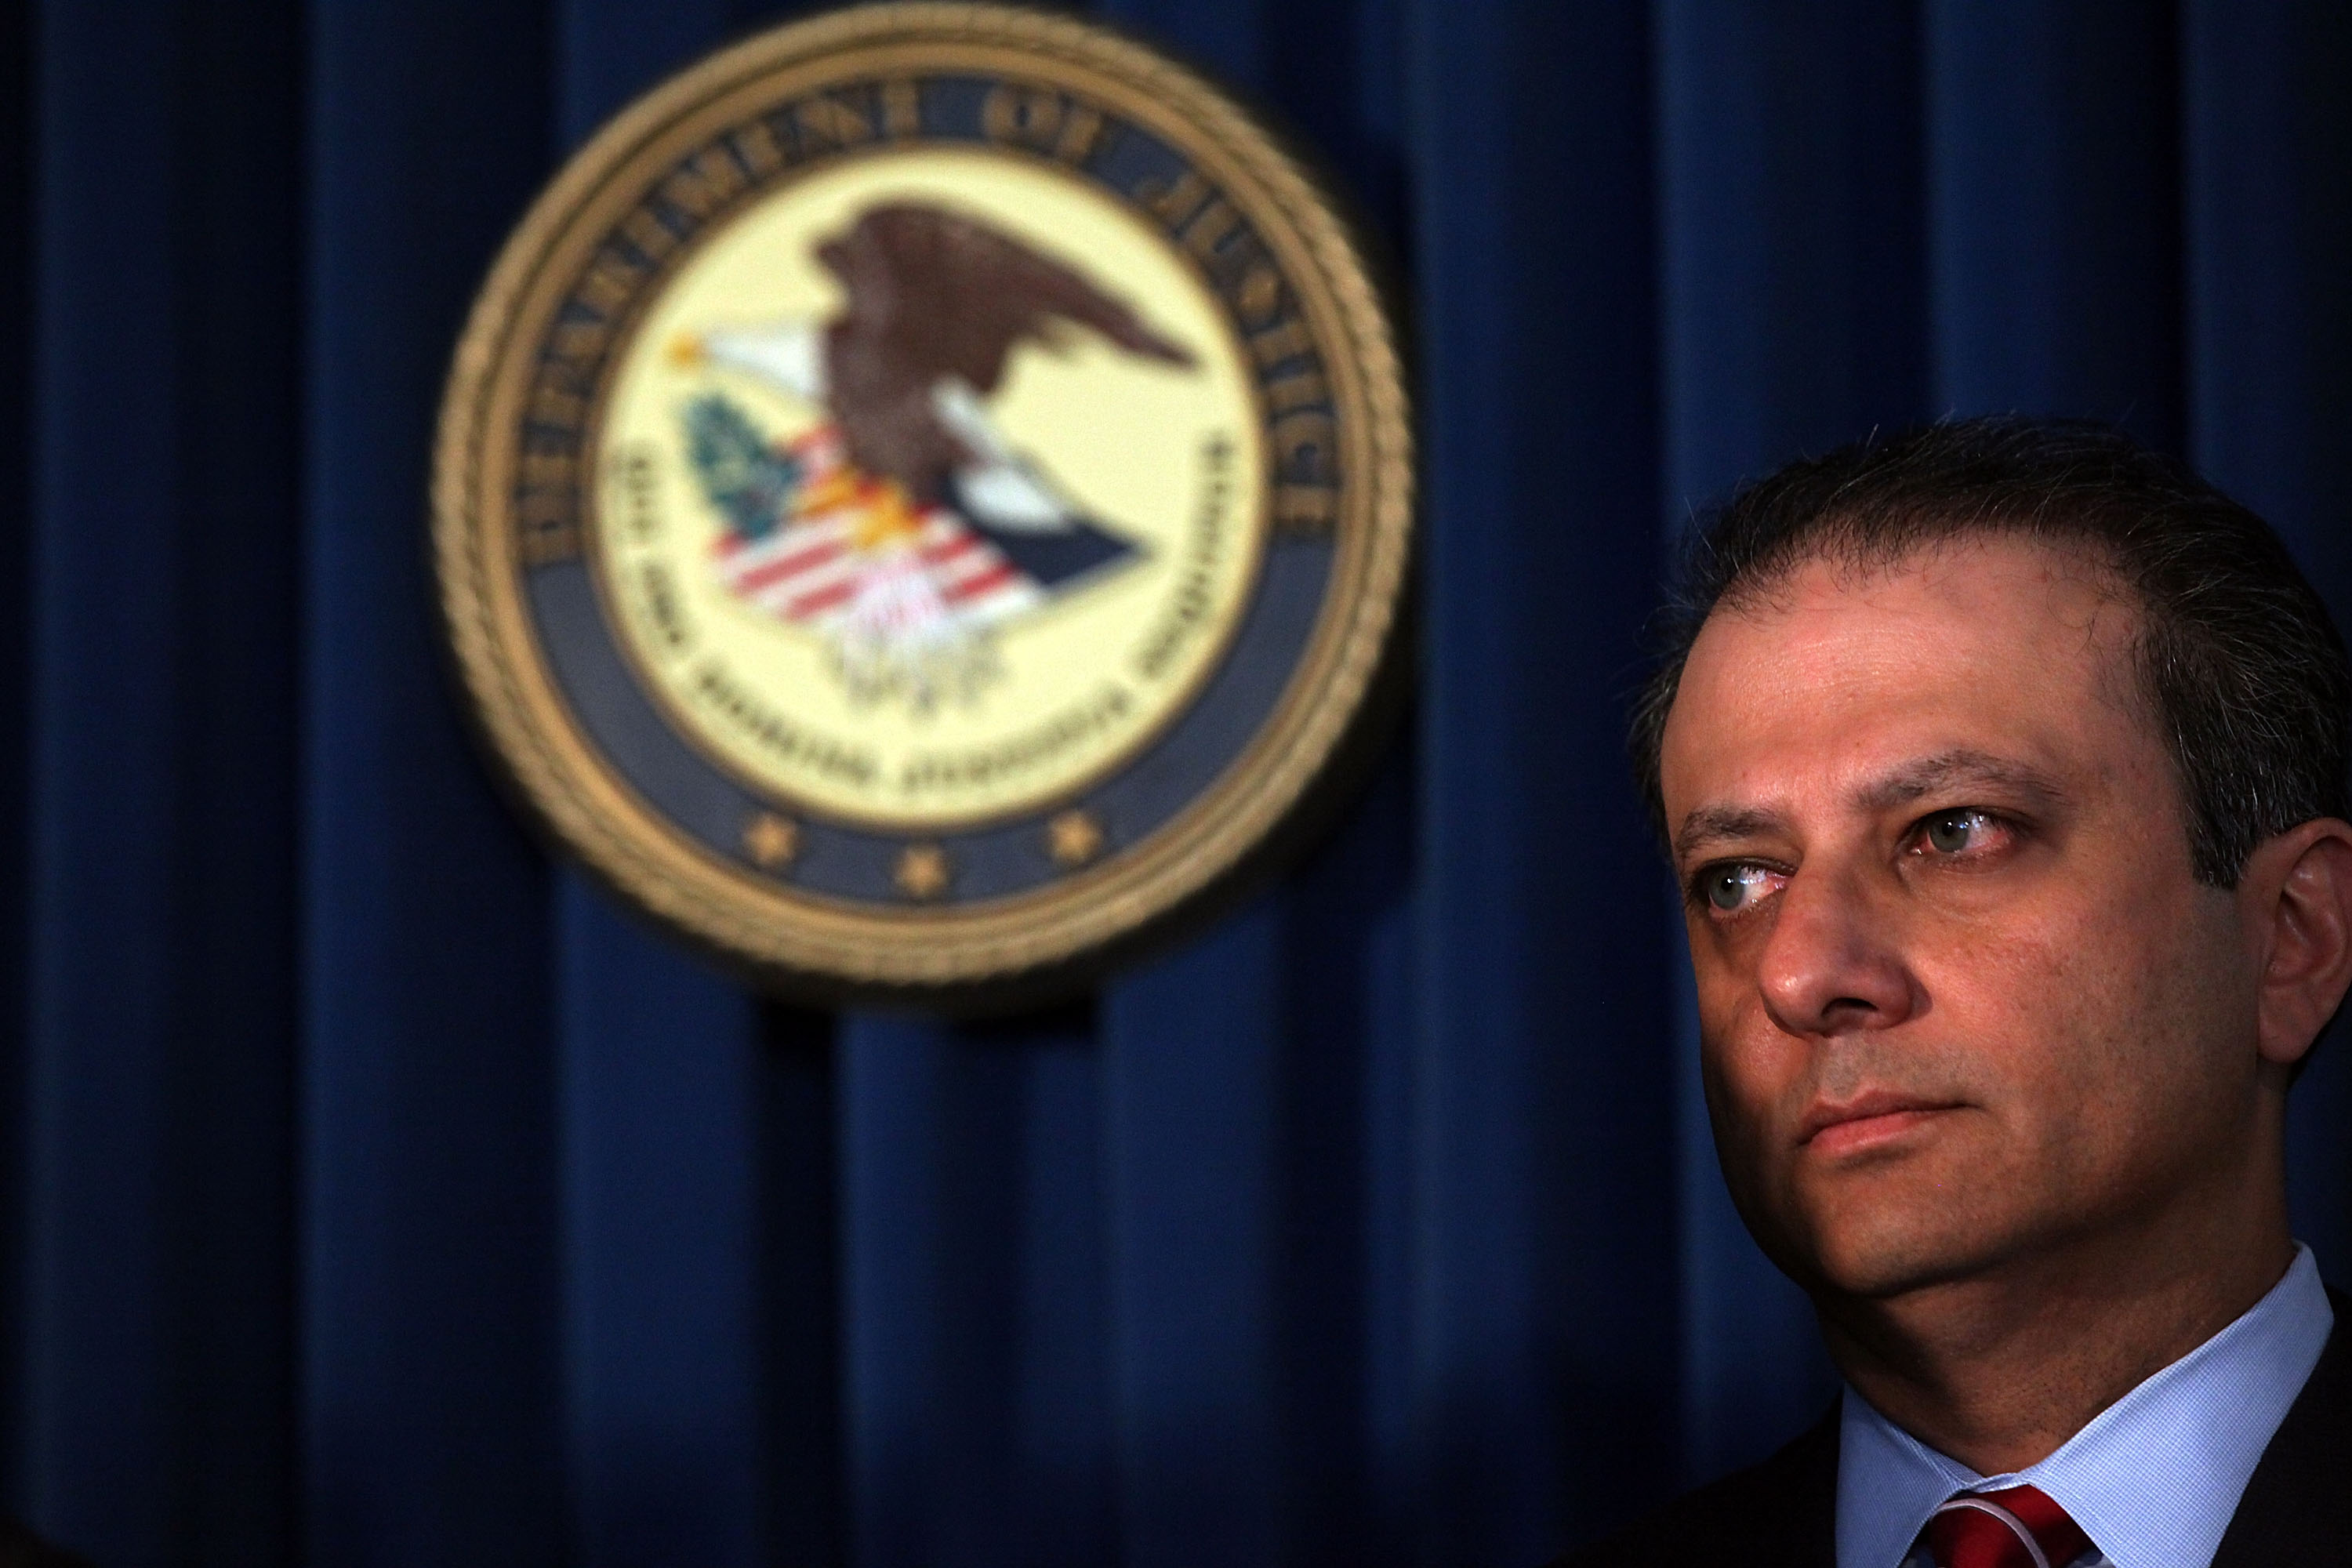 U.S. Attorney Preet Bharara. (Photo by Spencer Platt/Getty Images)